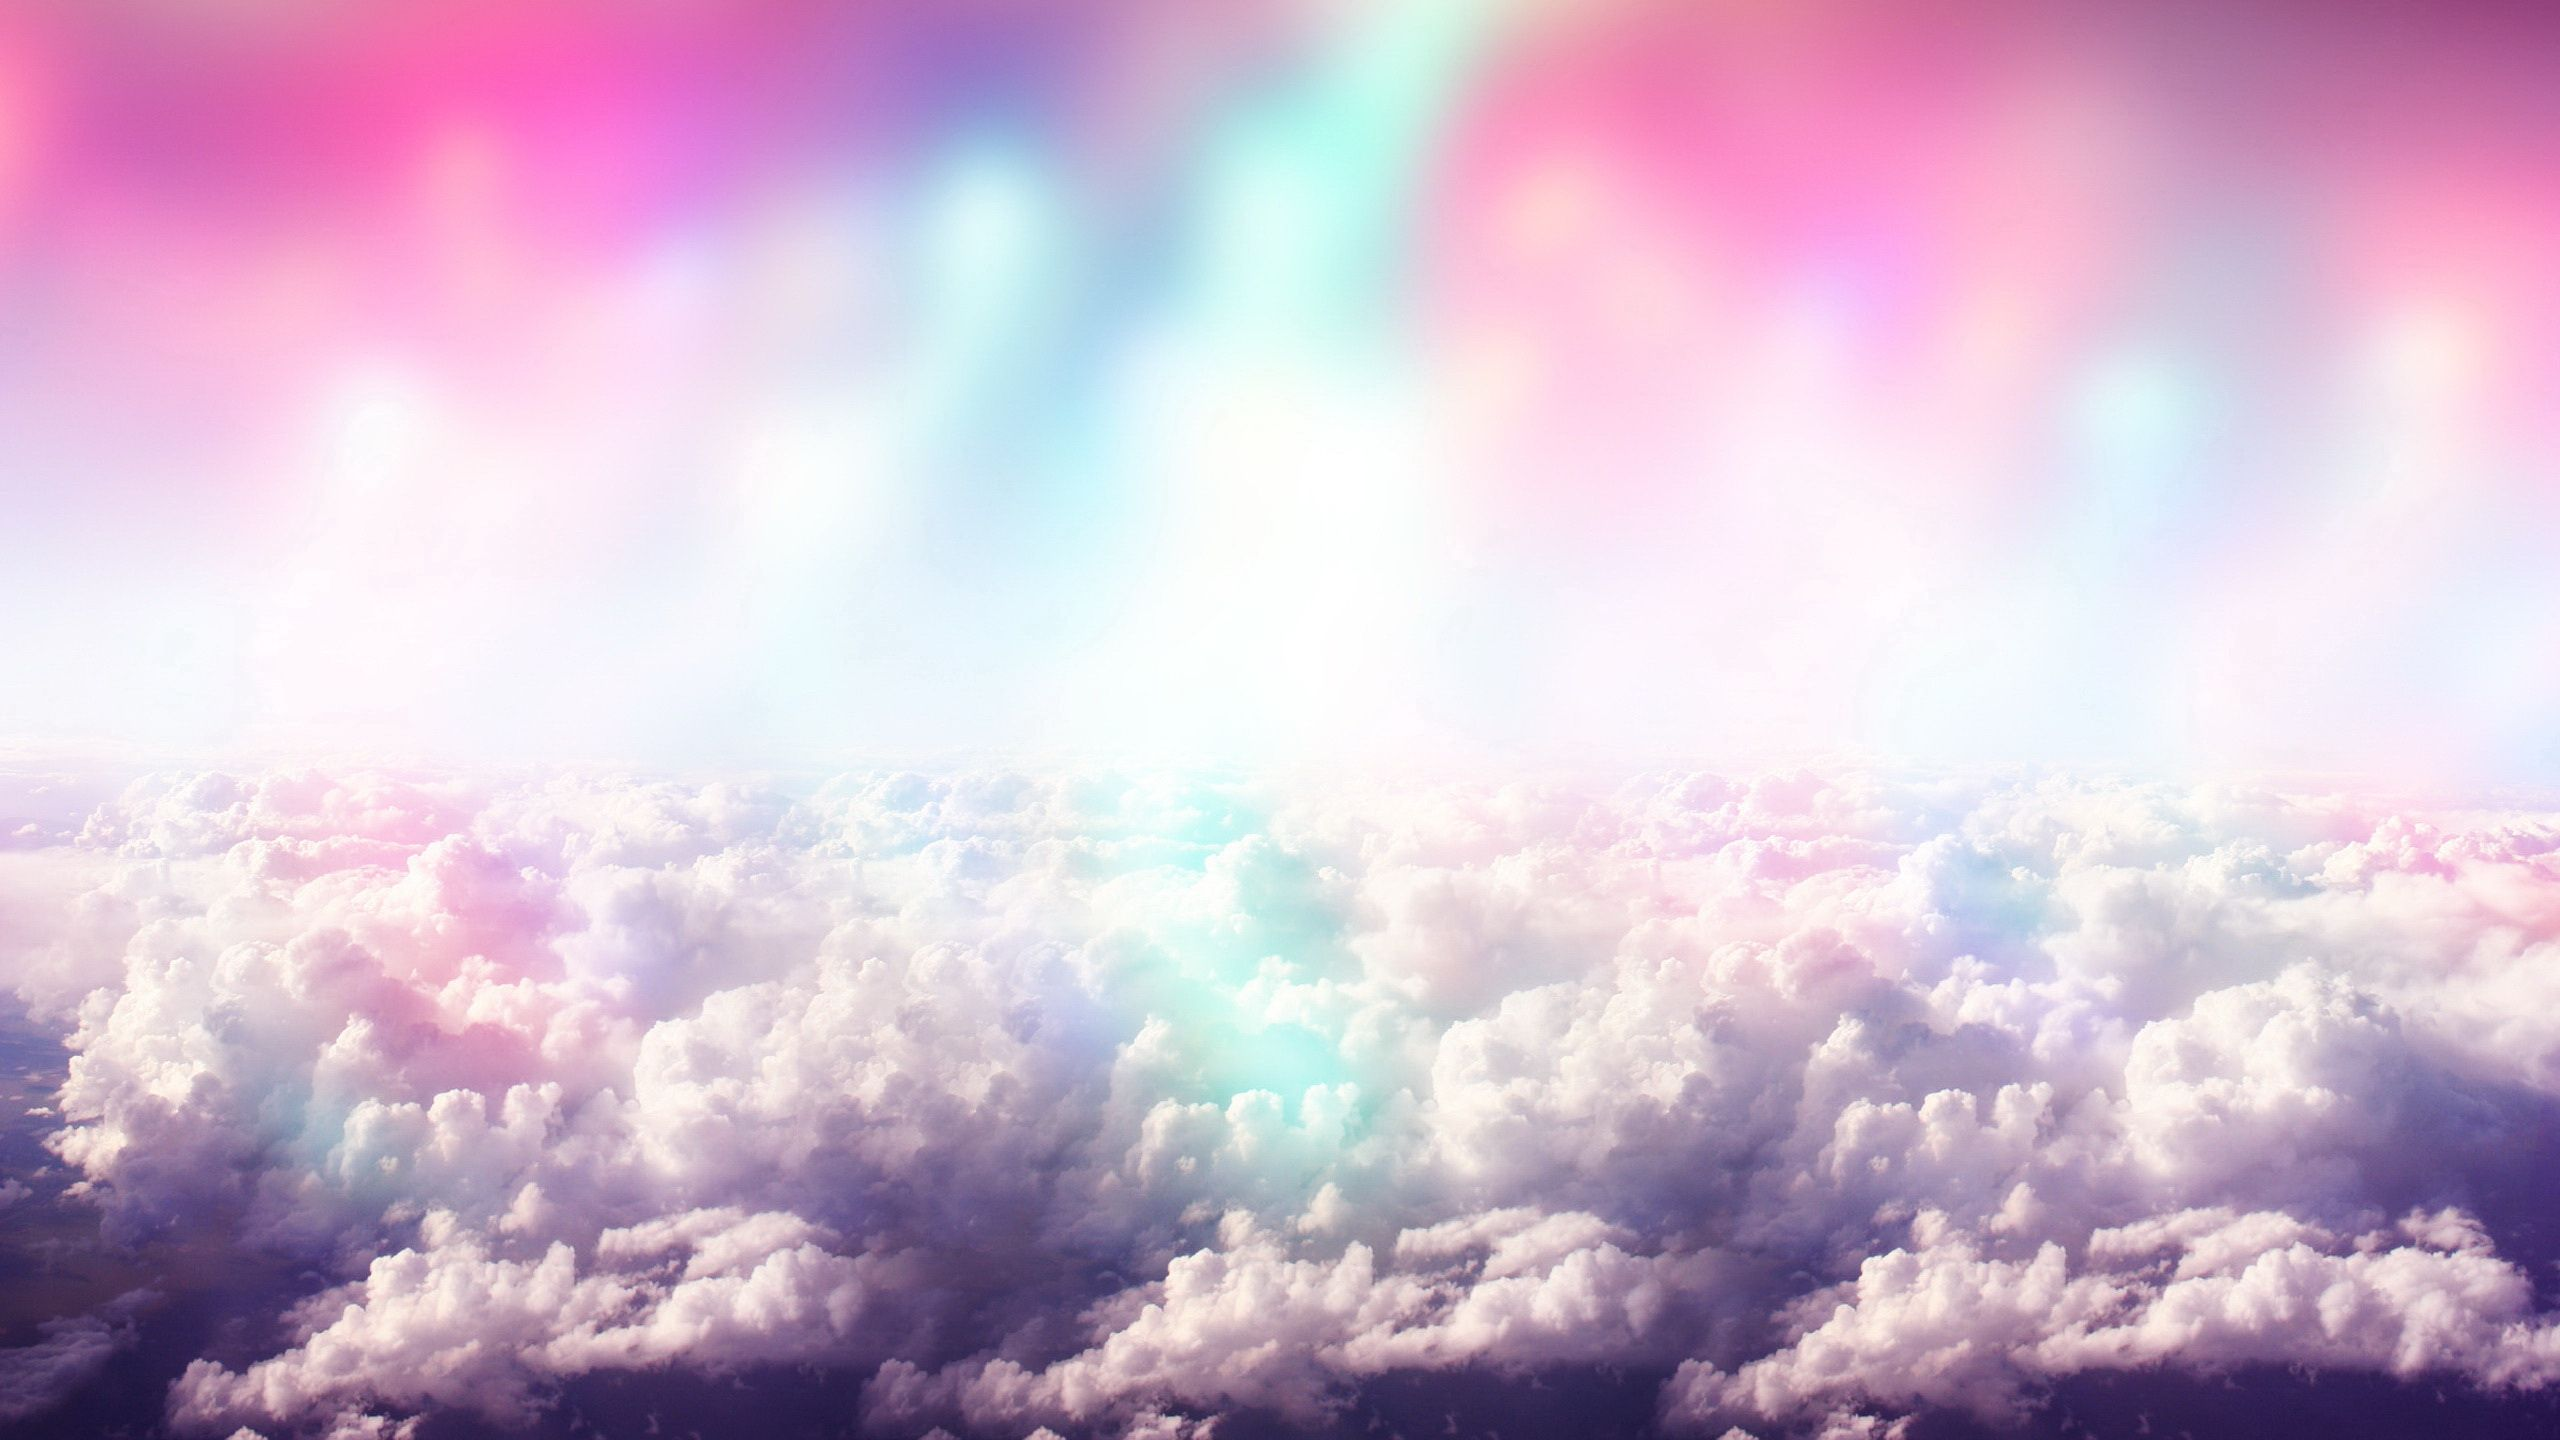 Fairy Clouds 2560 X 1440 Sky And Clouds Desktop